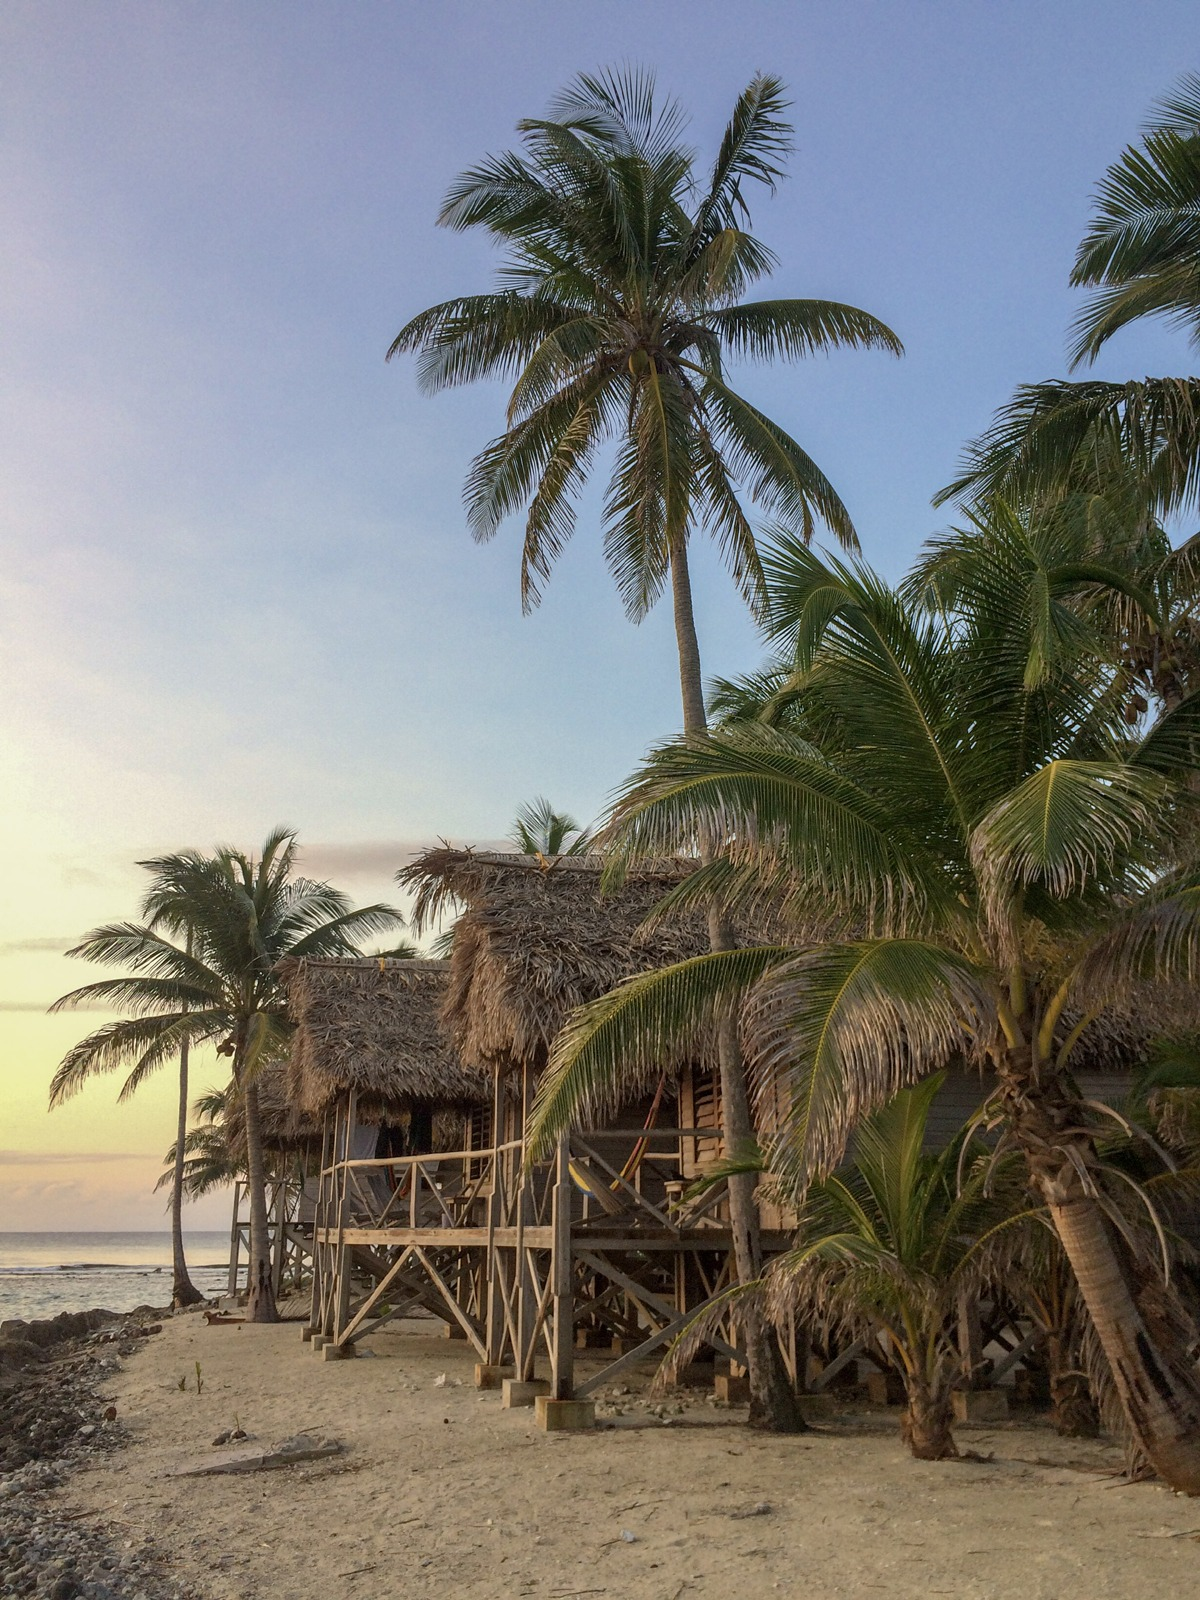 Long Island cabanas in Belize